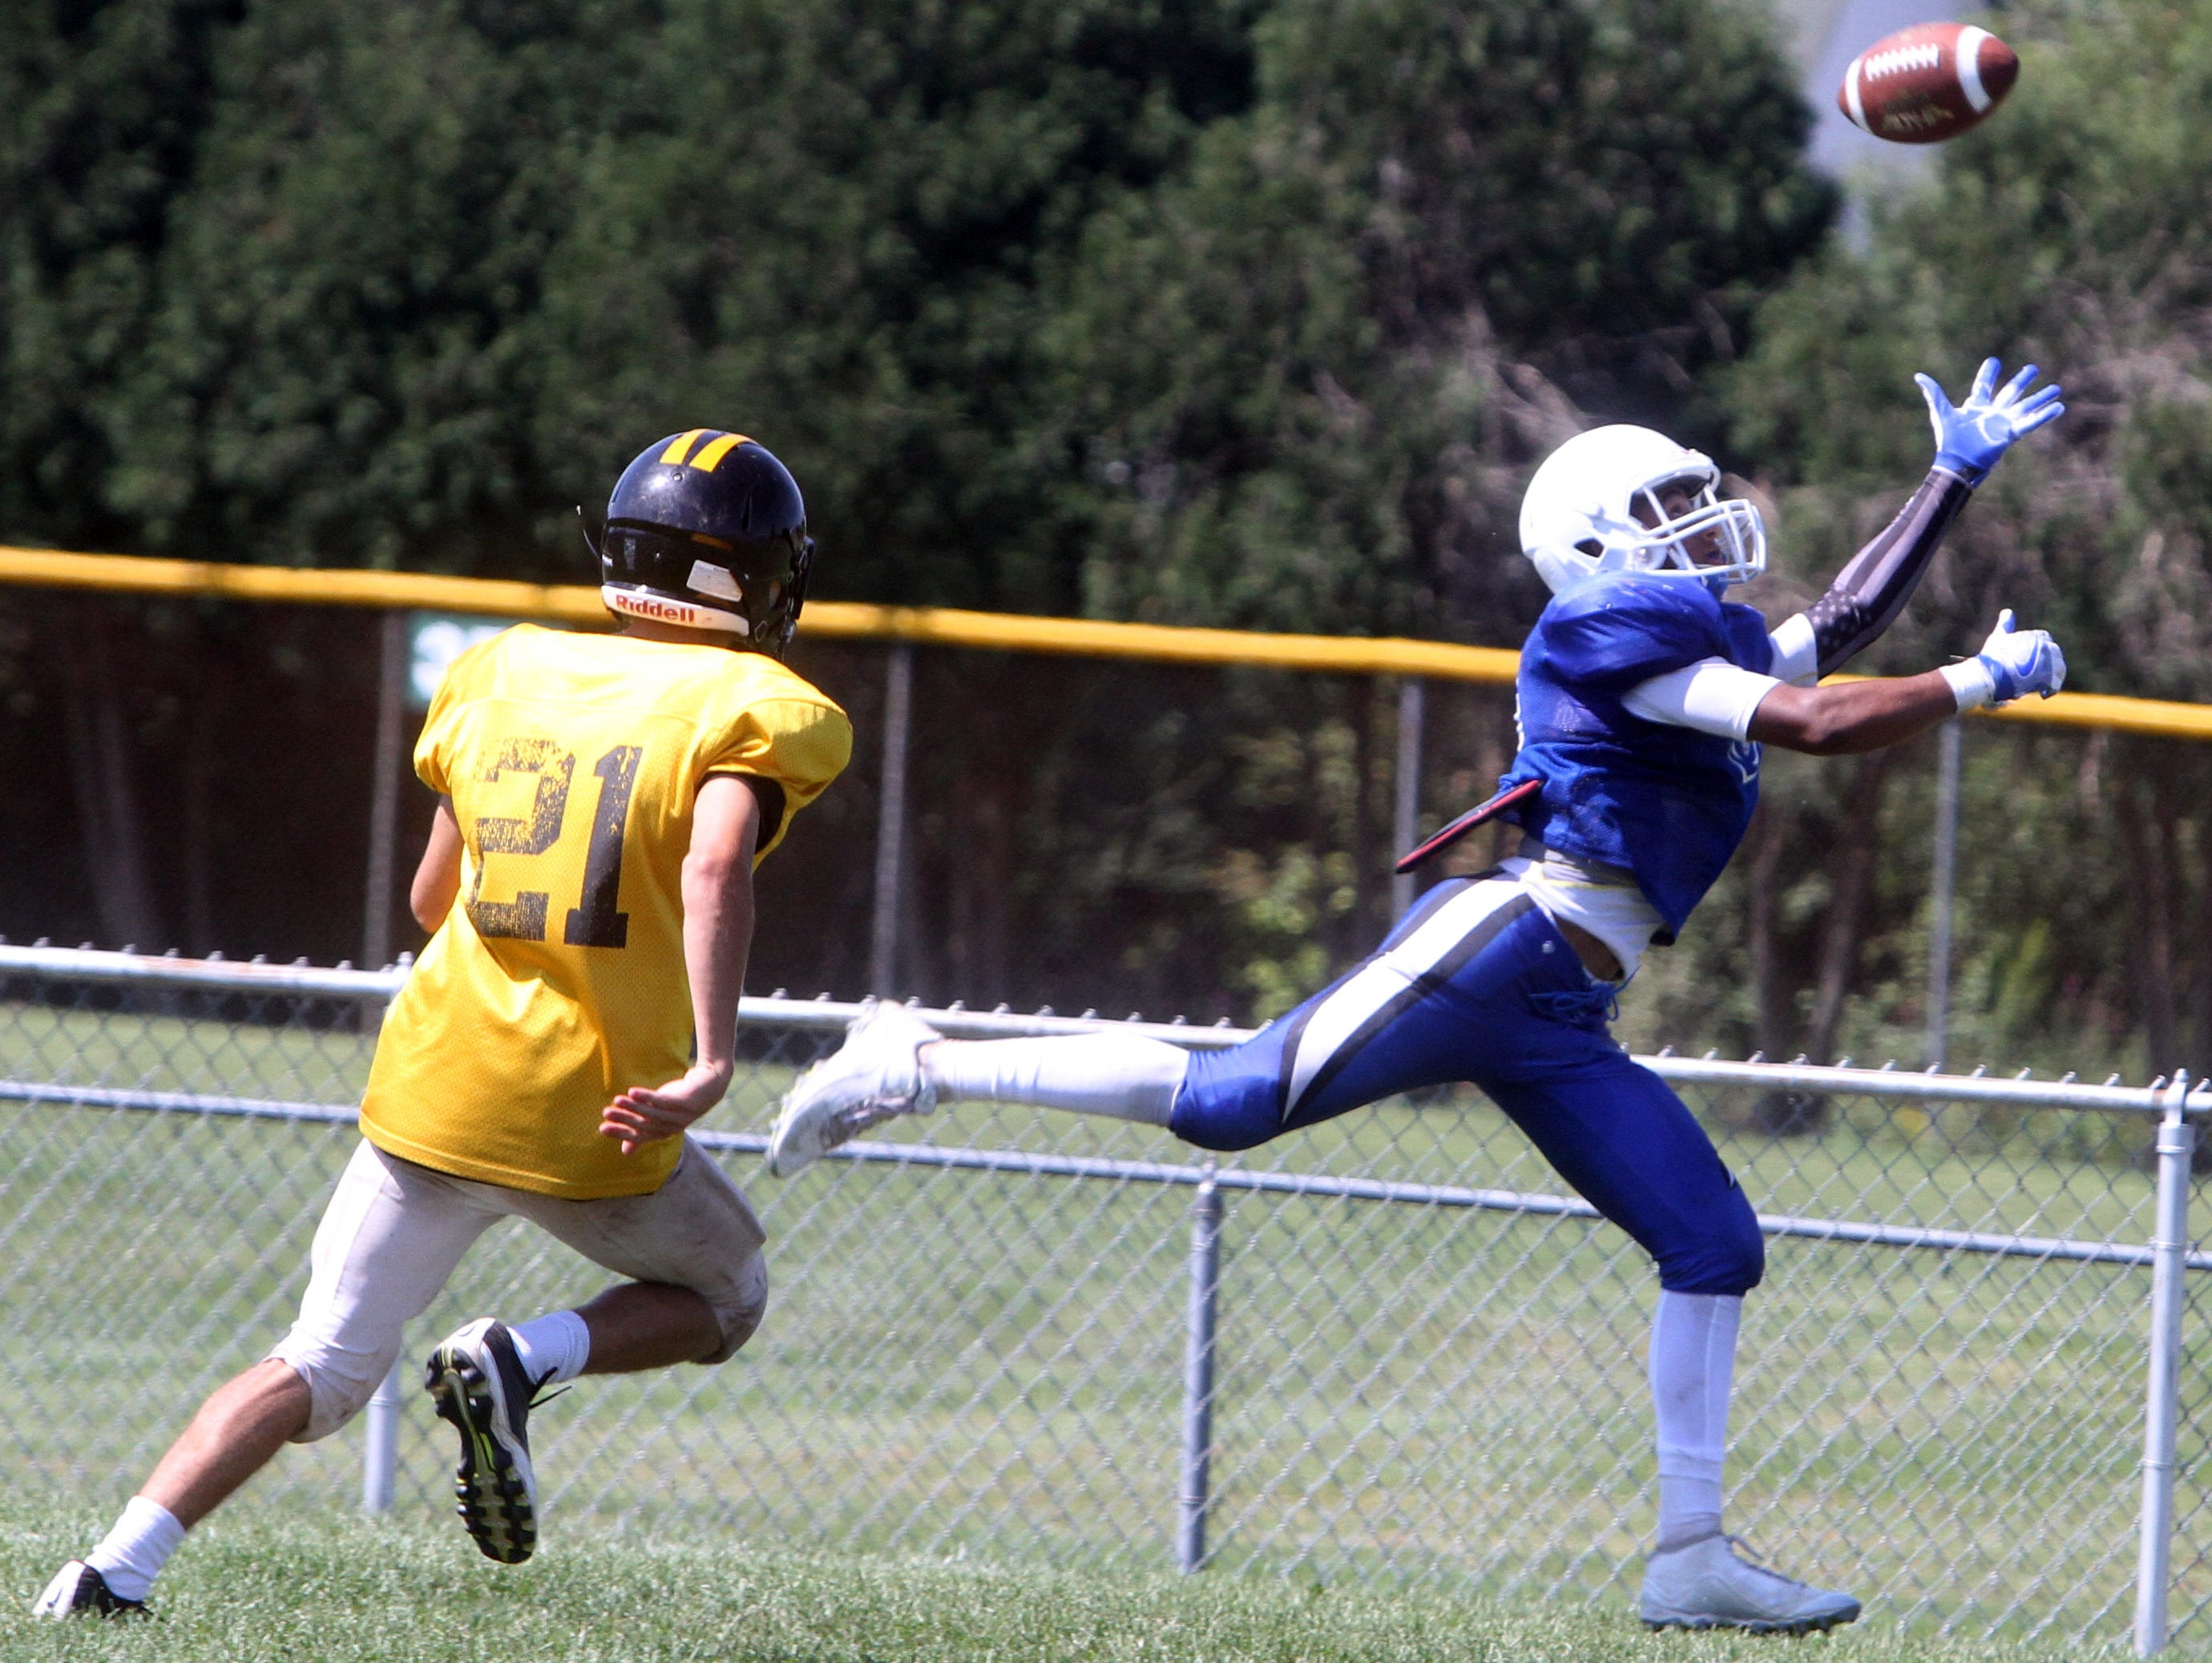 Hen Hud and Nanuet played each other in a multi-teamscrimmage at Brewster High School Saturday. Area teams took part in the scrimmage in advance of next weekend's season-opening games.